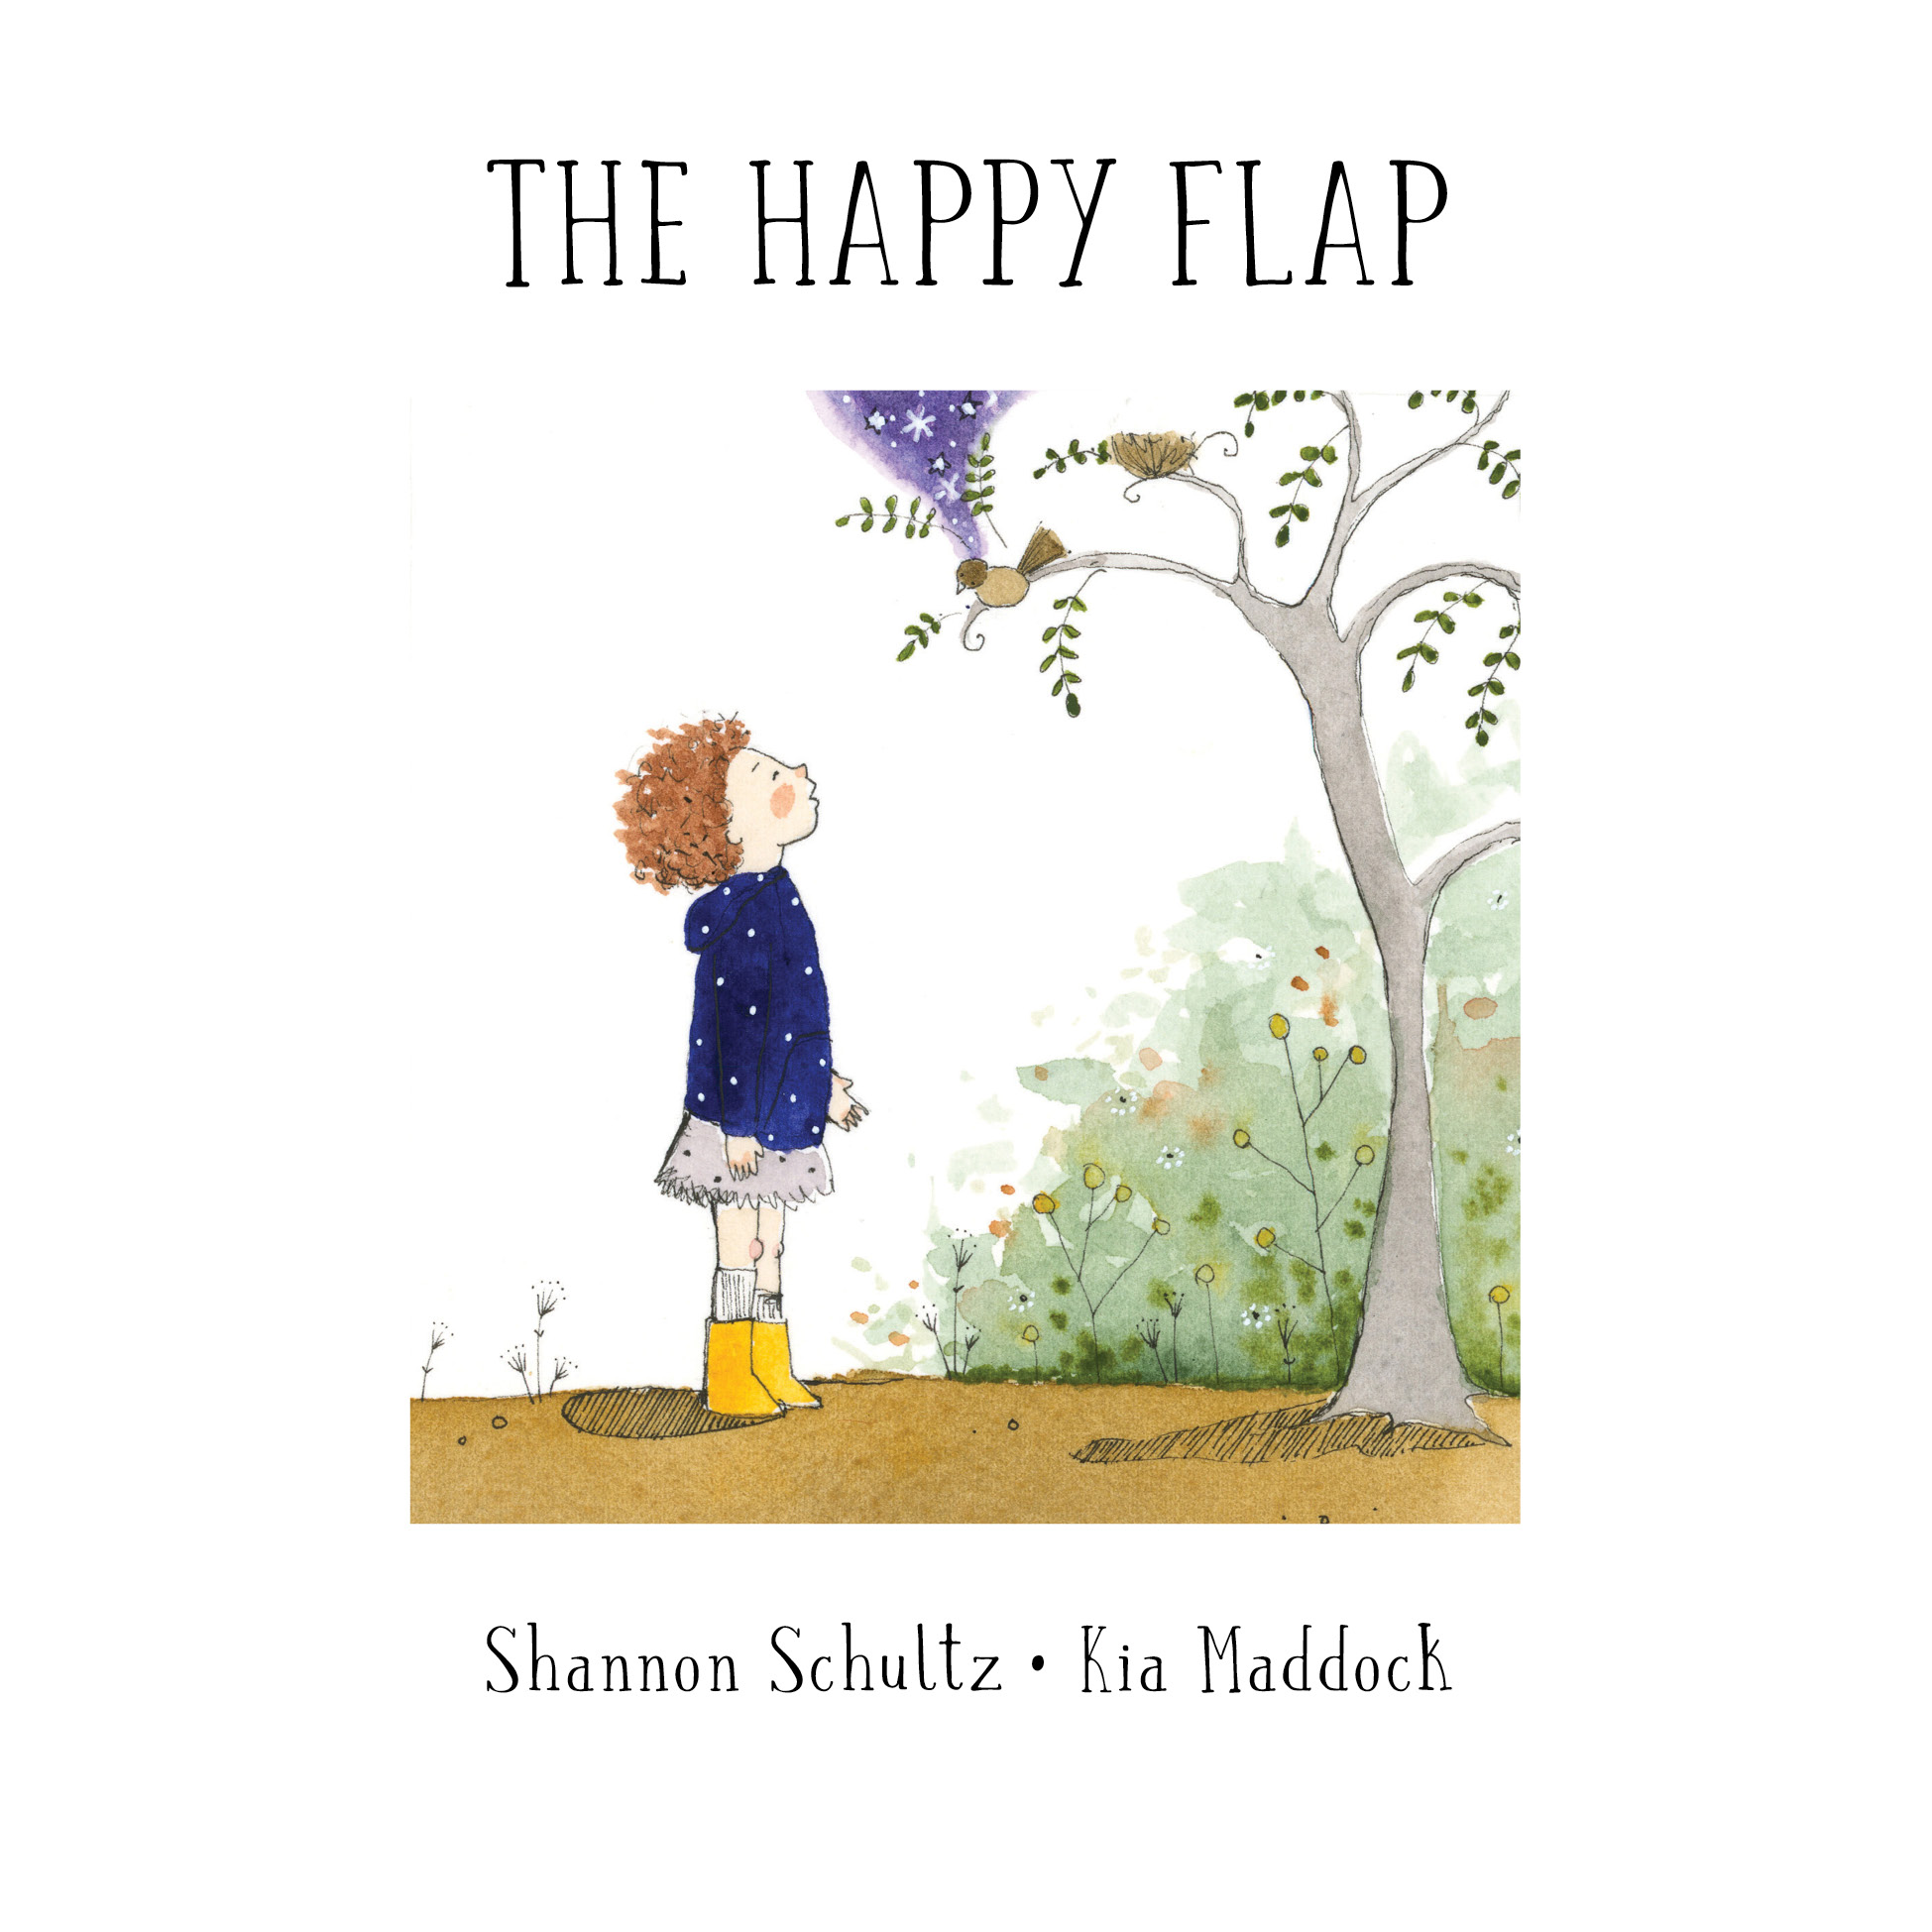 The_Happy_Flap_eBook_Cover_01.jpg